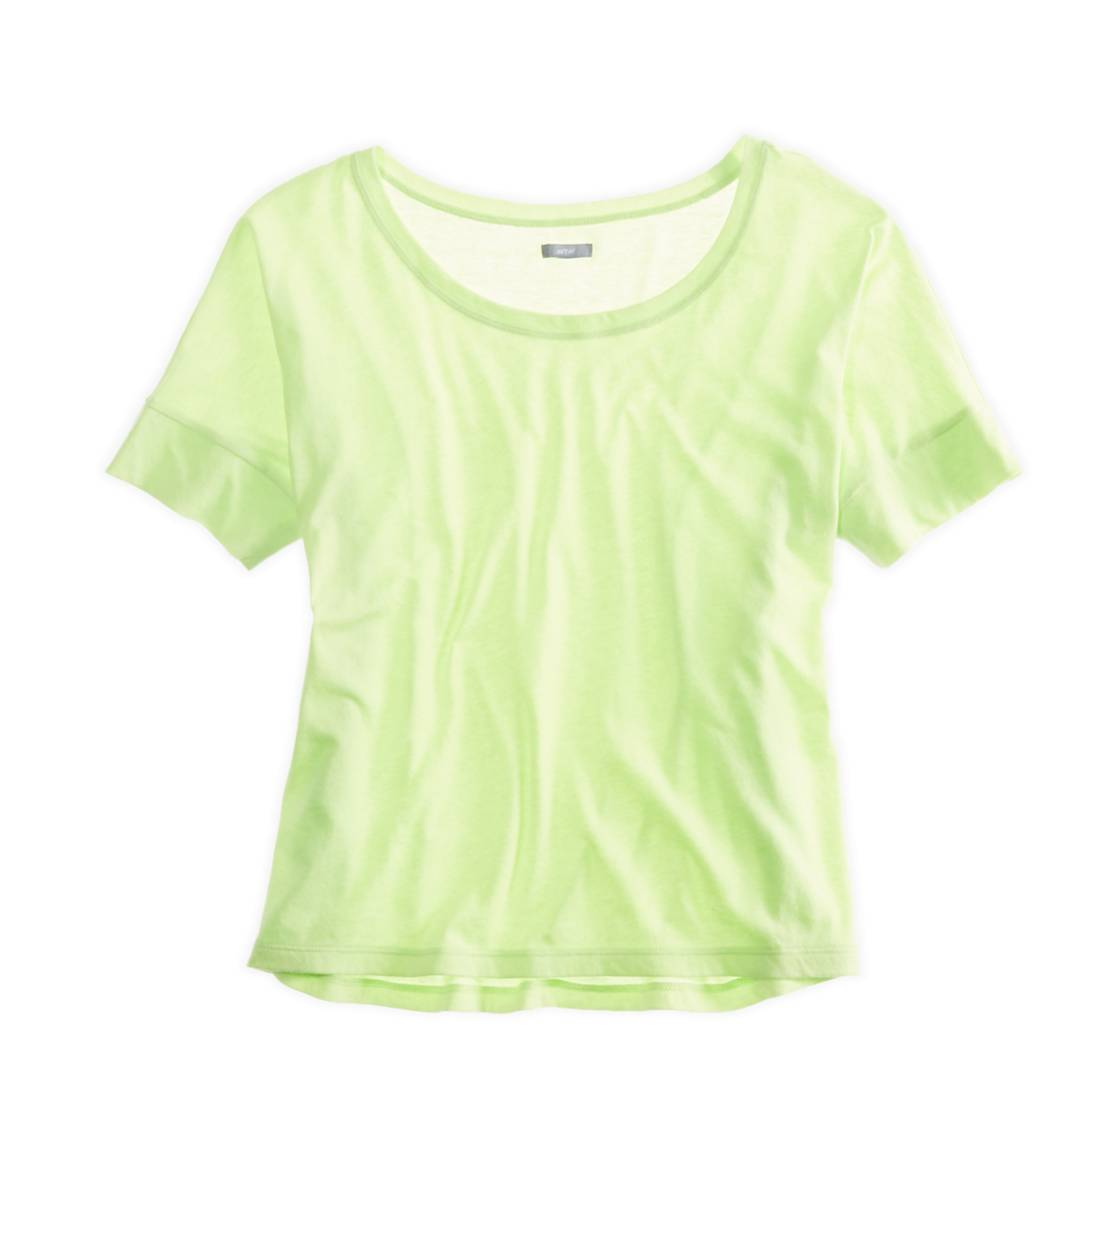 Sharp Green Aerie Crop T-Shirt